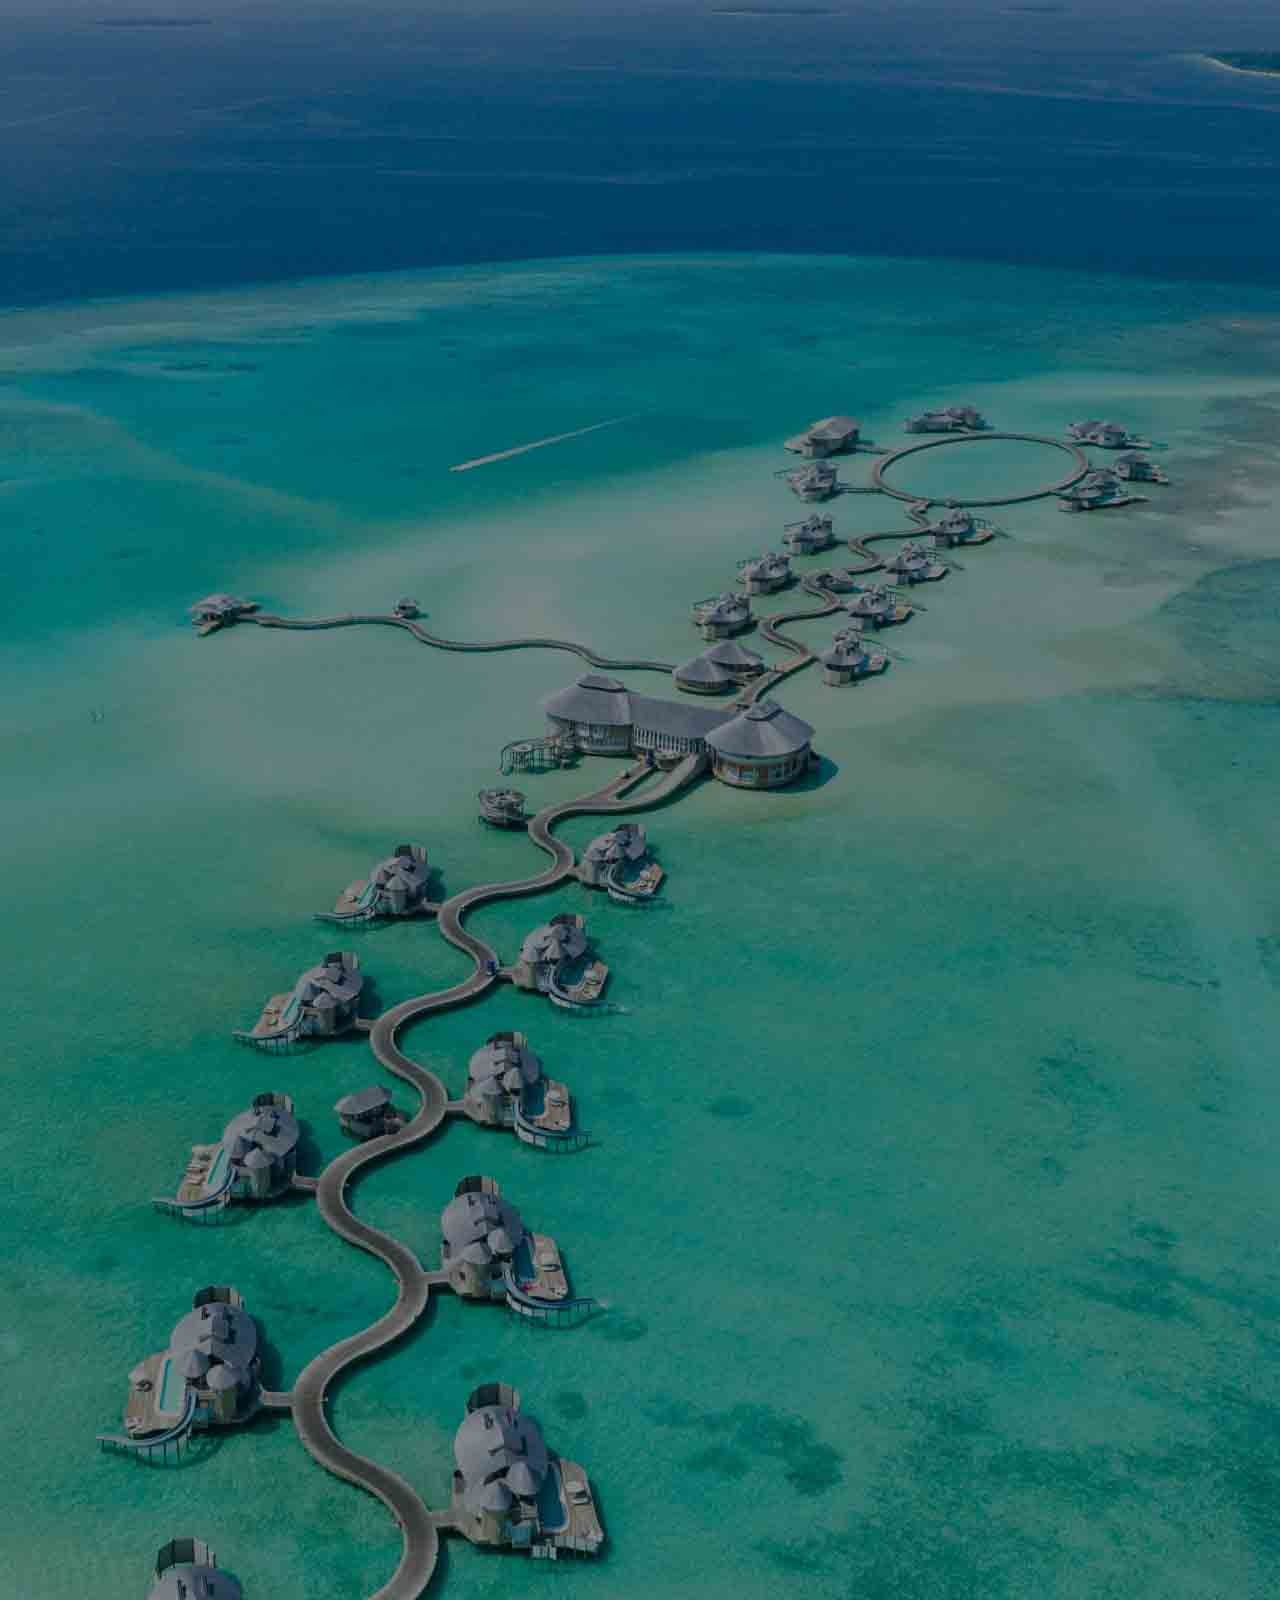 birds eye view of maldives luxury villas and turquoise waters